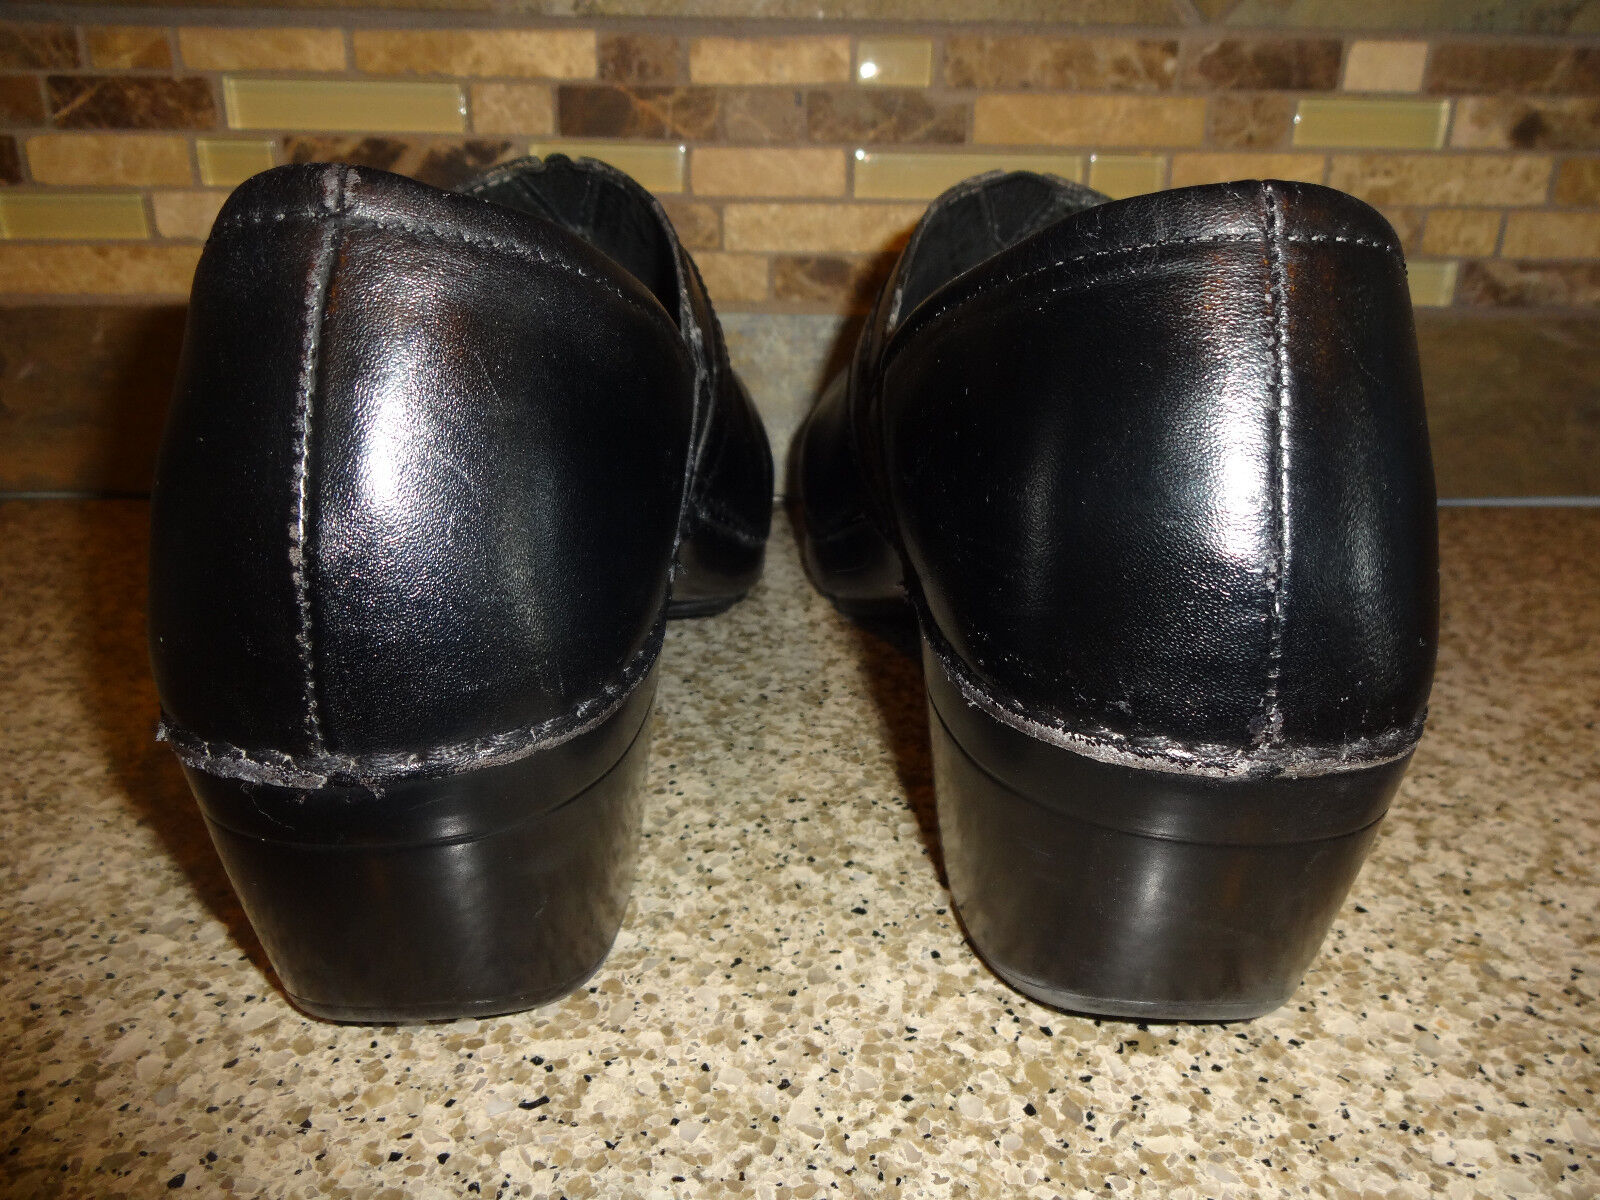 Donna Sz 41 US 10.5-11 Dansko nero Leather Leather Leather Slip-on scarpe Button Detail 8d71b9